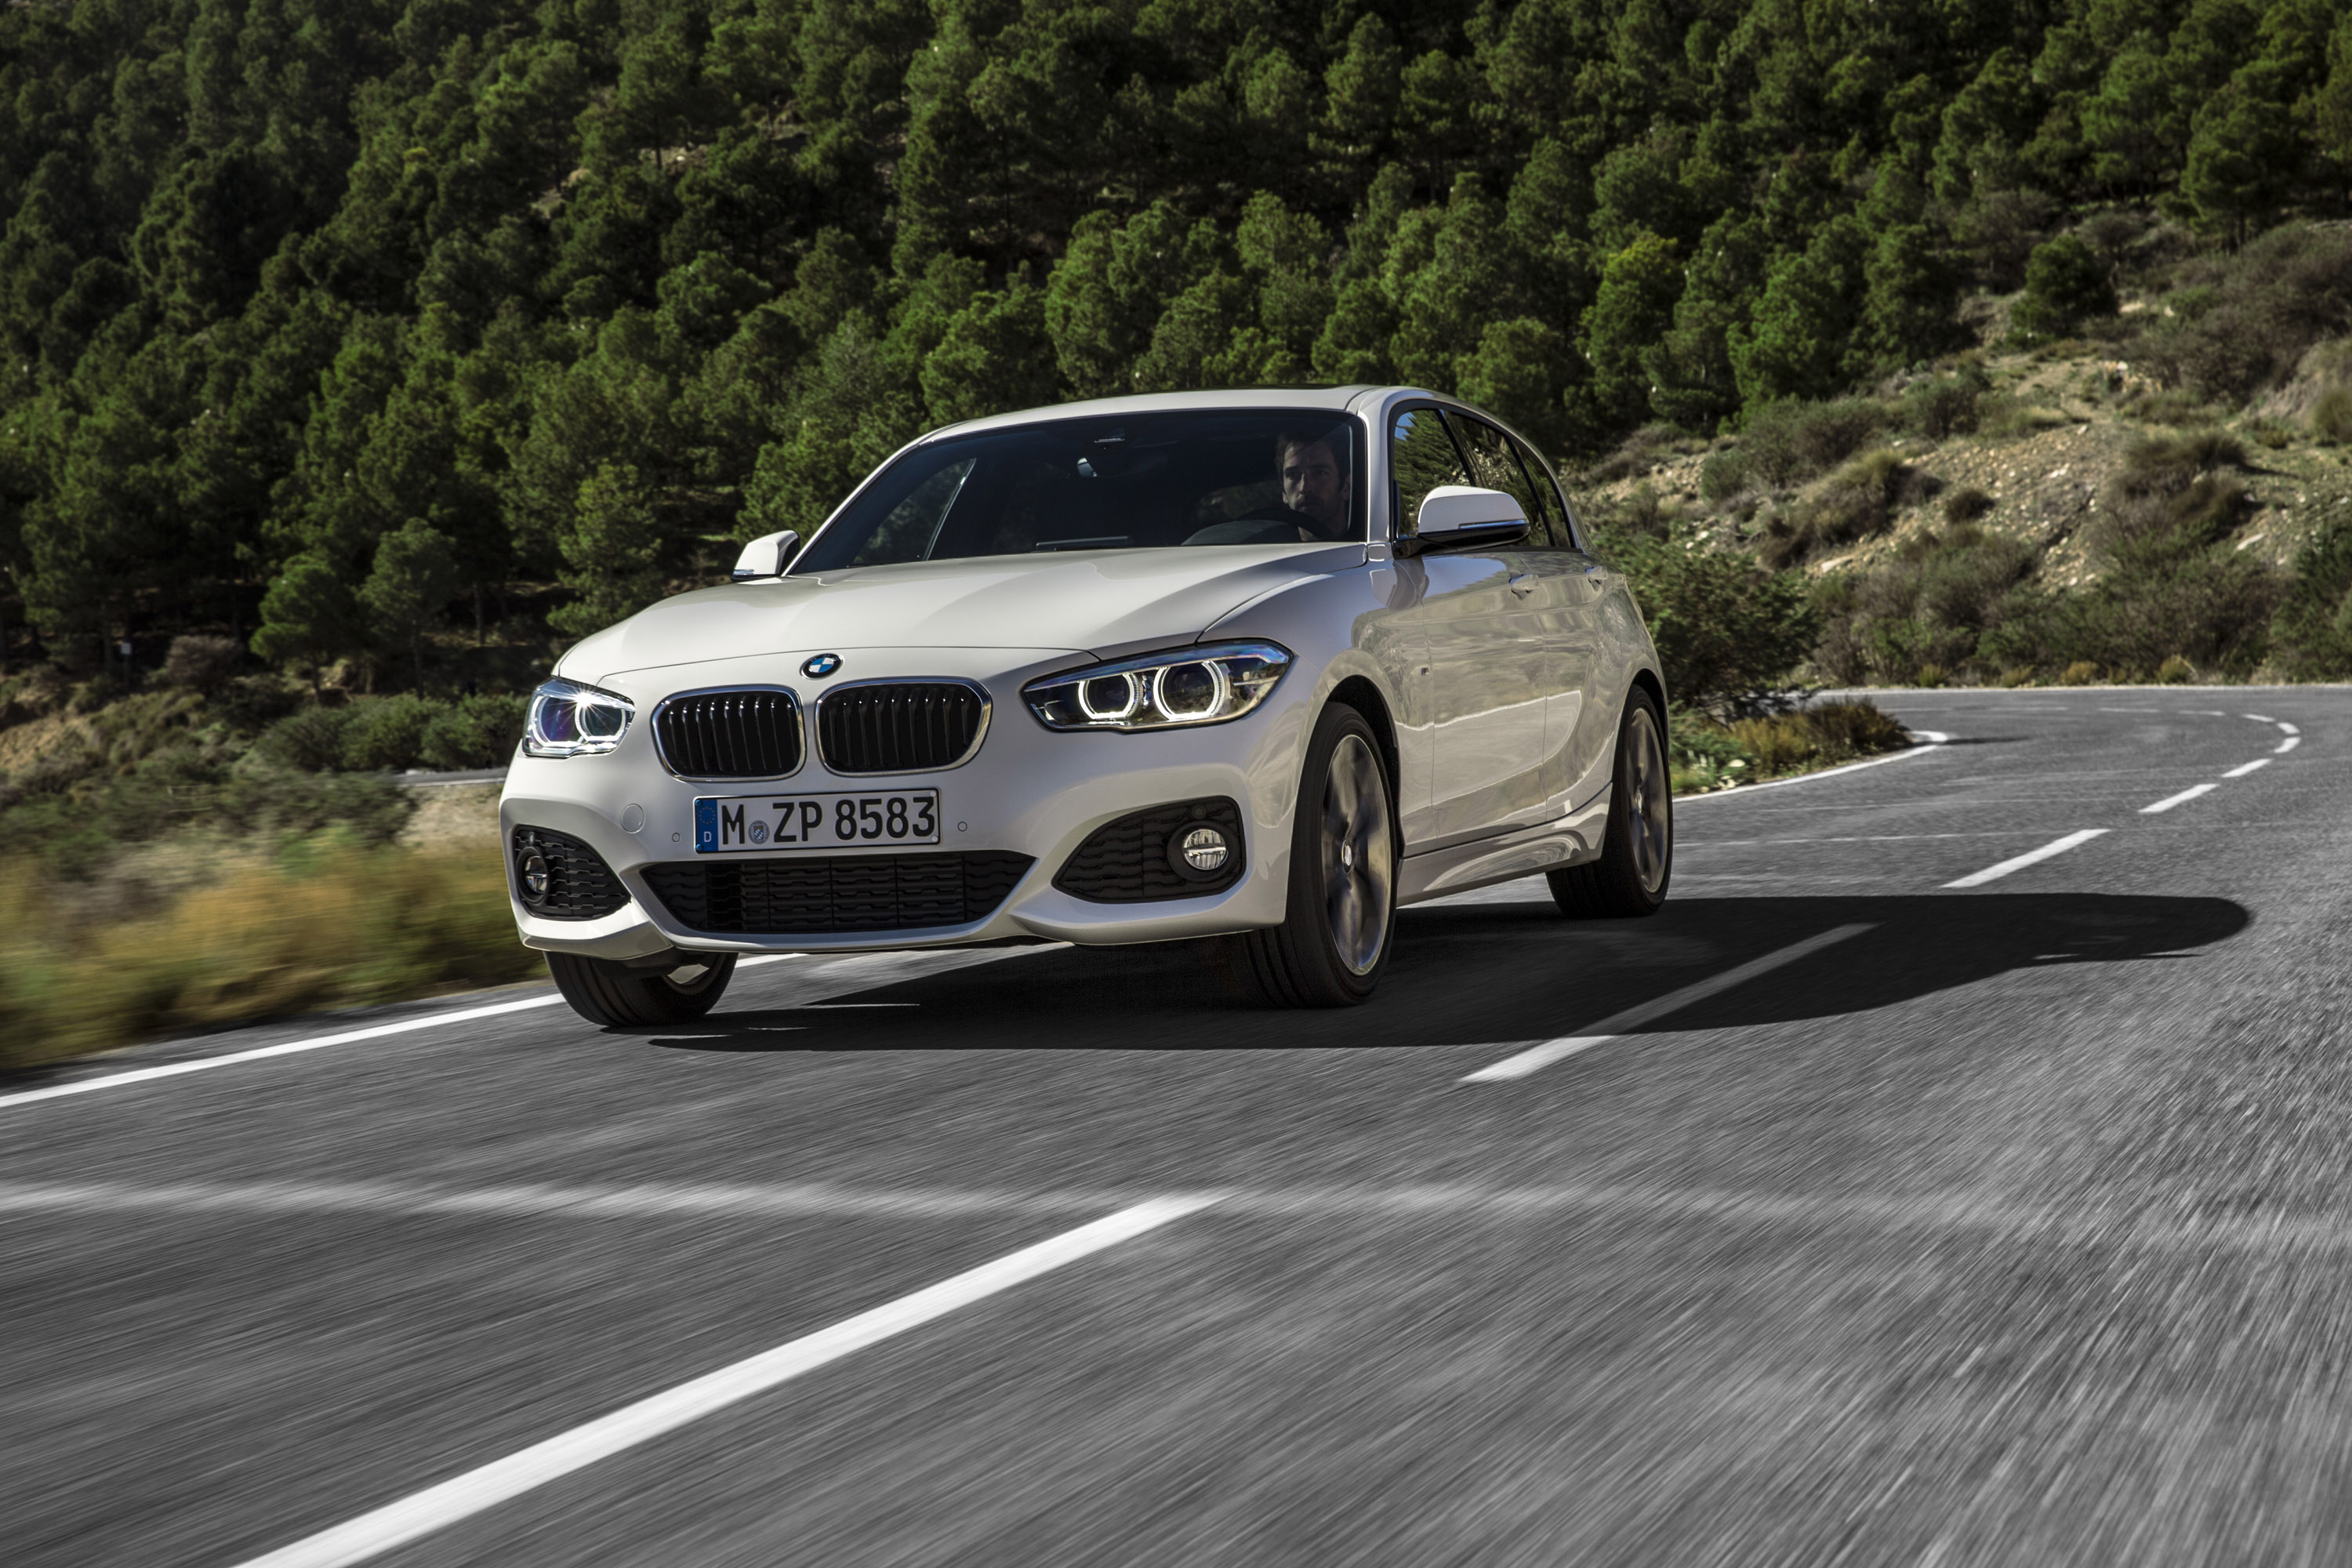 2019 BMW 1 Series Range photo - 4